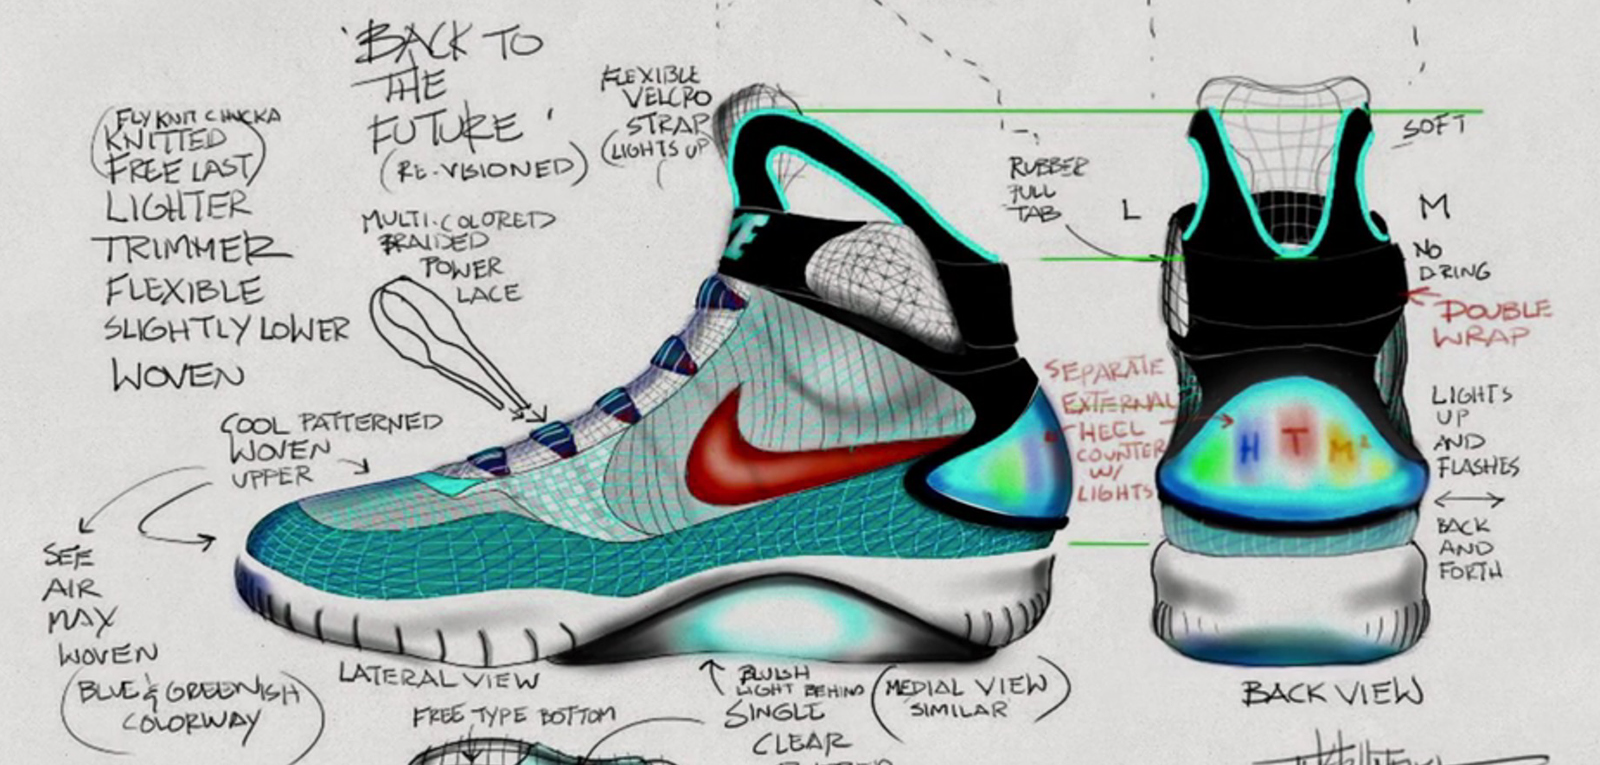 Review: The Footwear Design Episode of